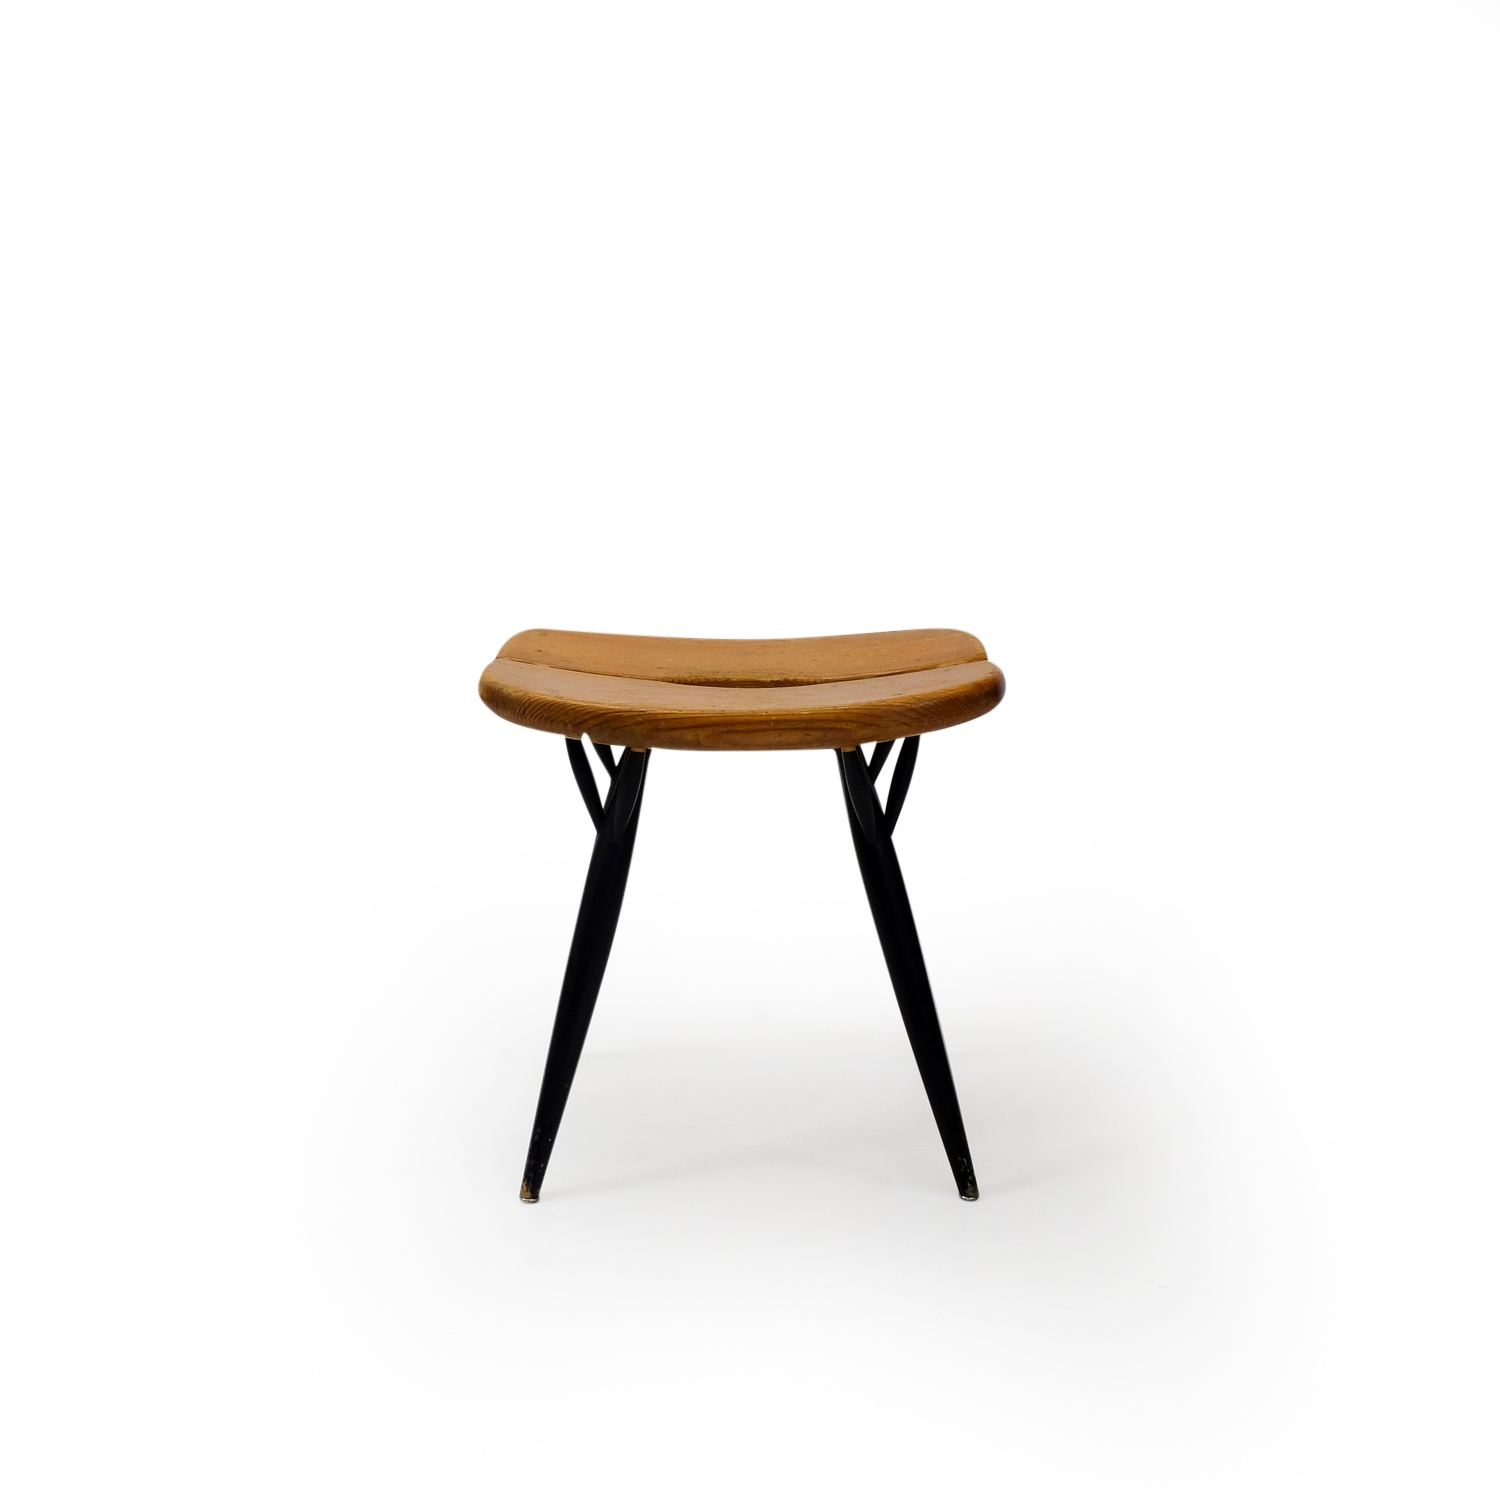 Vintage Pine Stool by Asko, black legs, 1950s